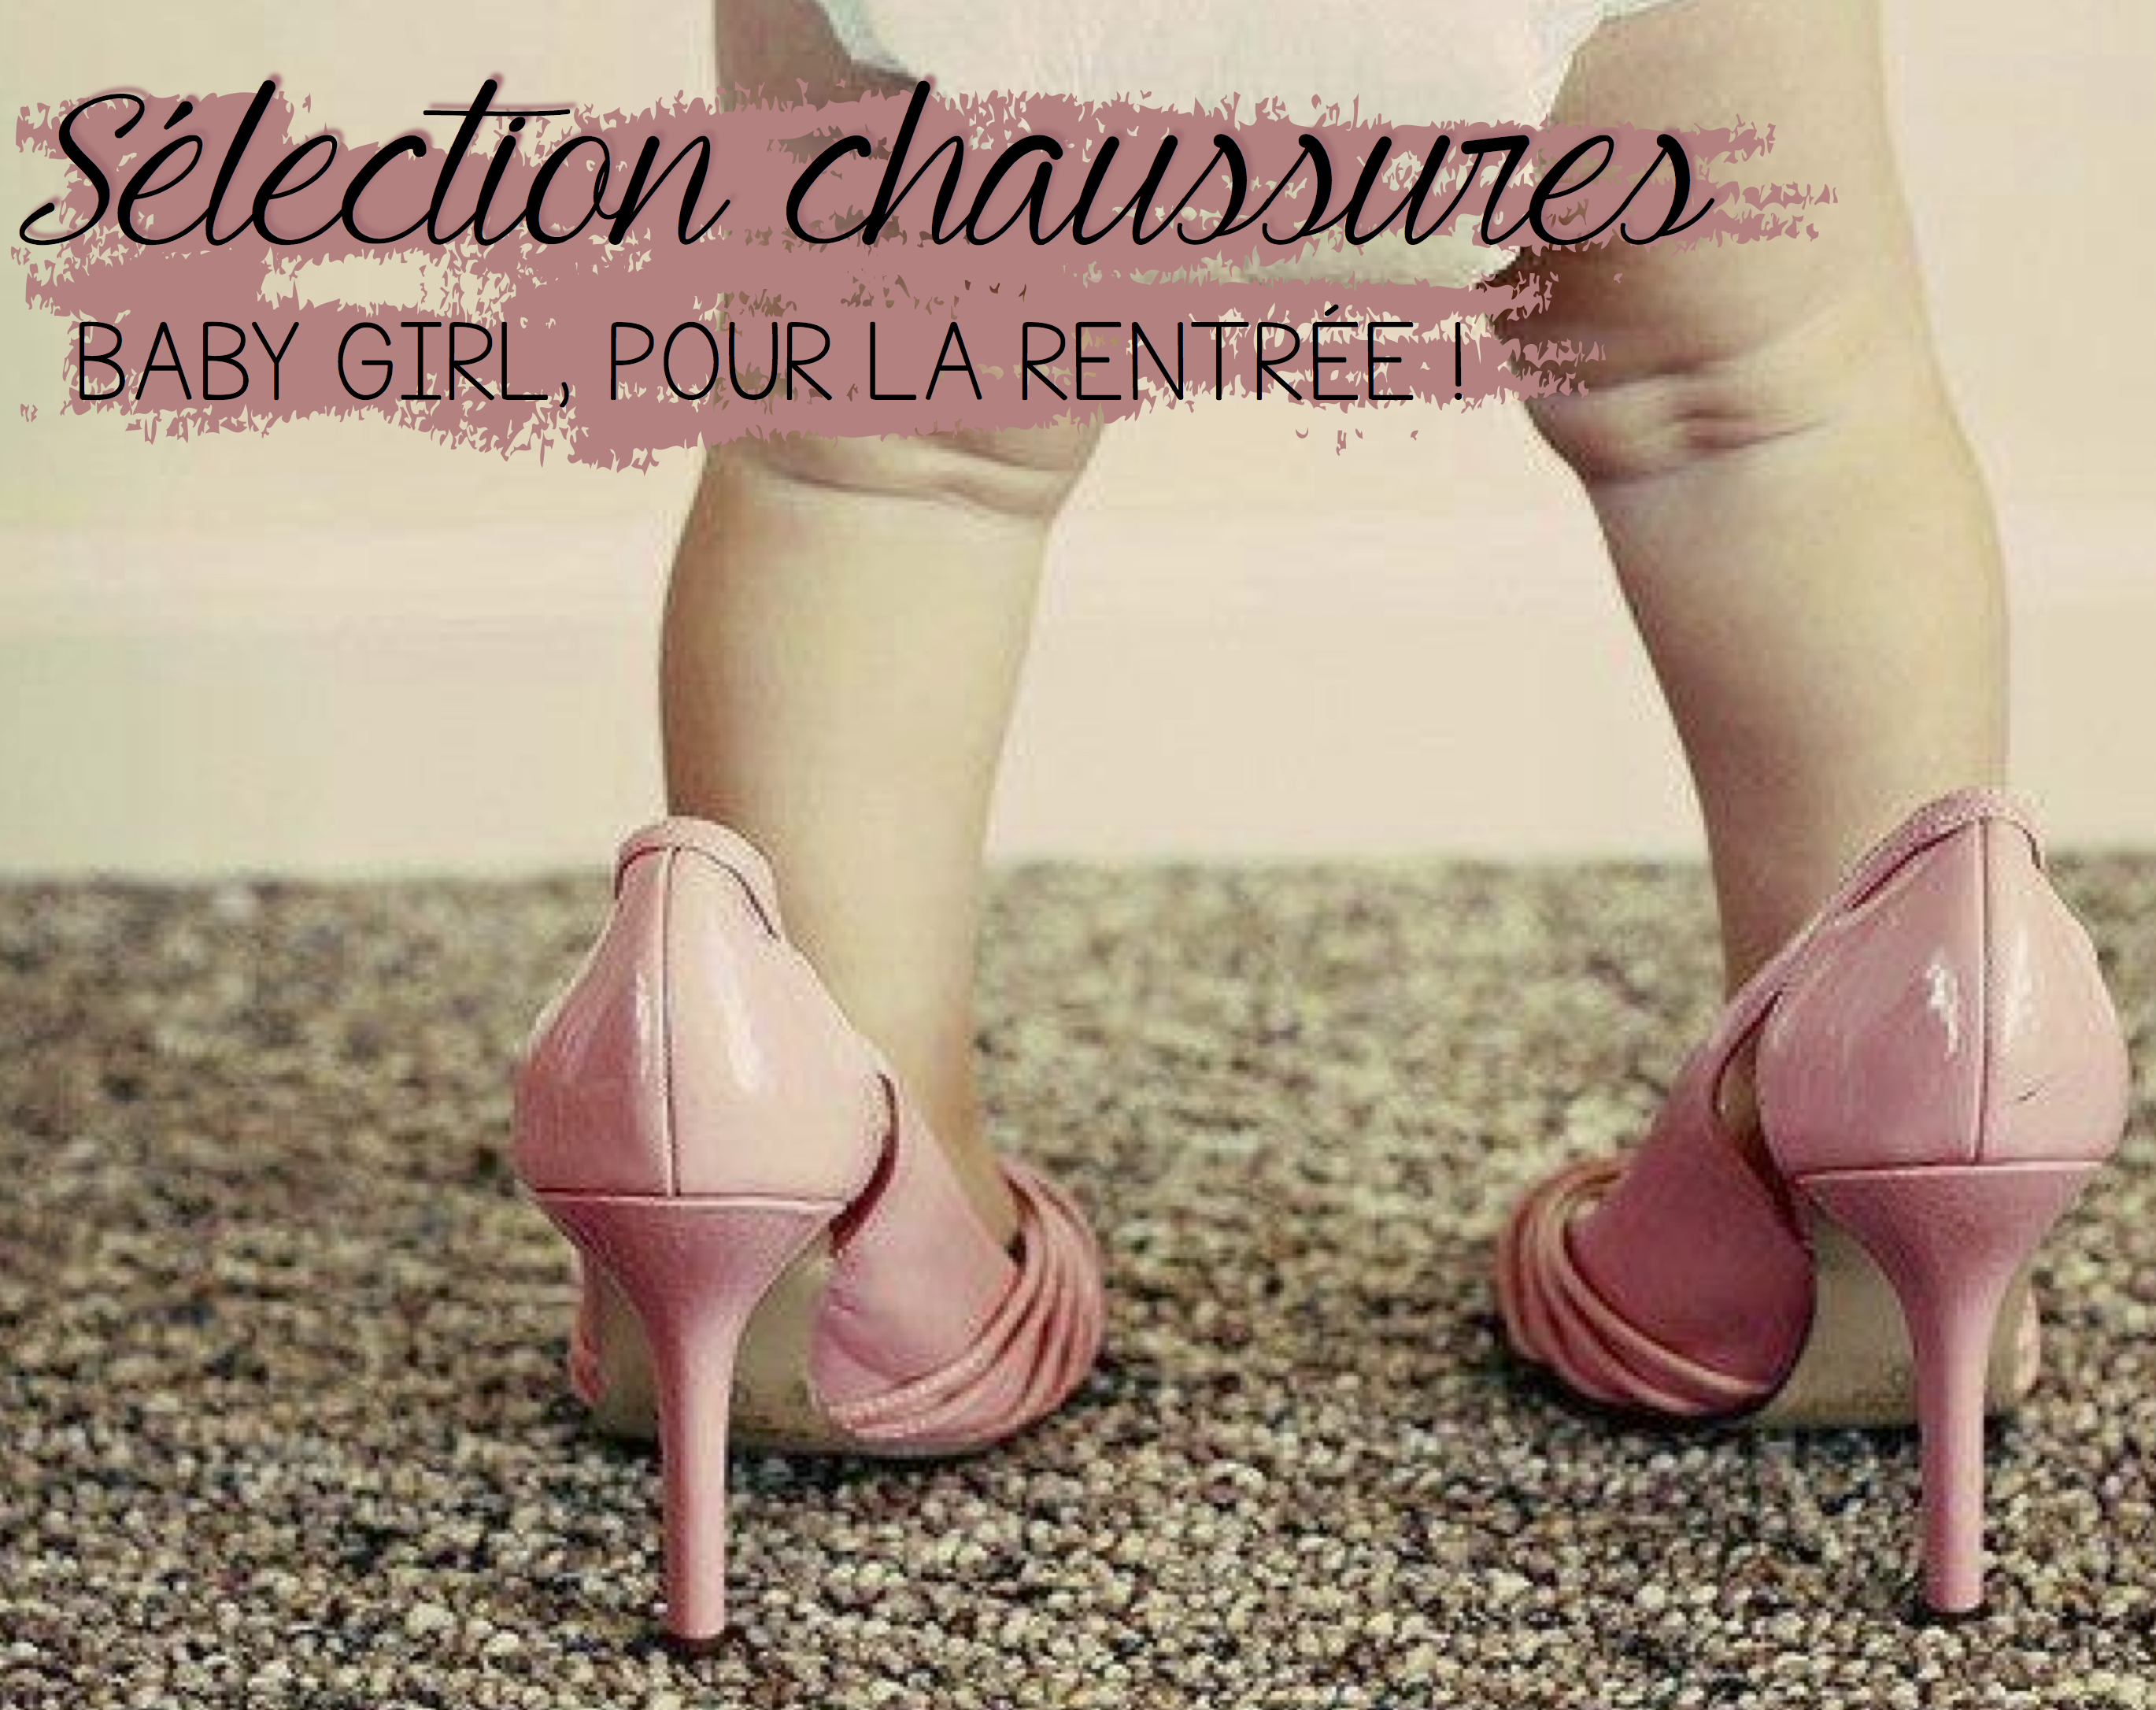 sélection chaussure baby girl